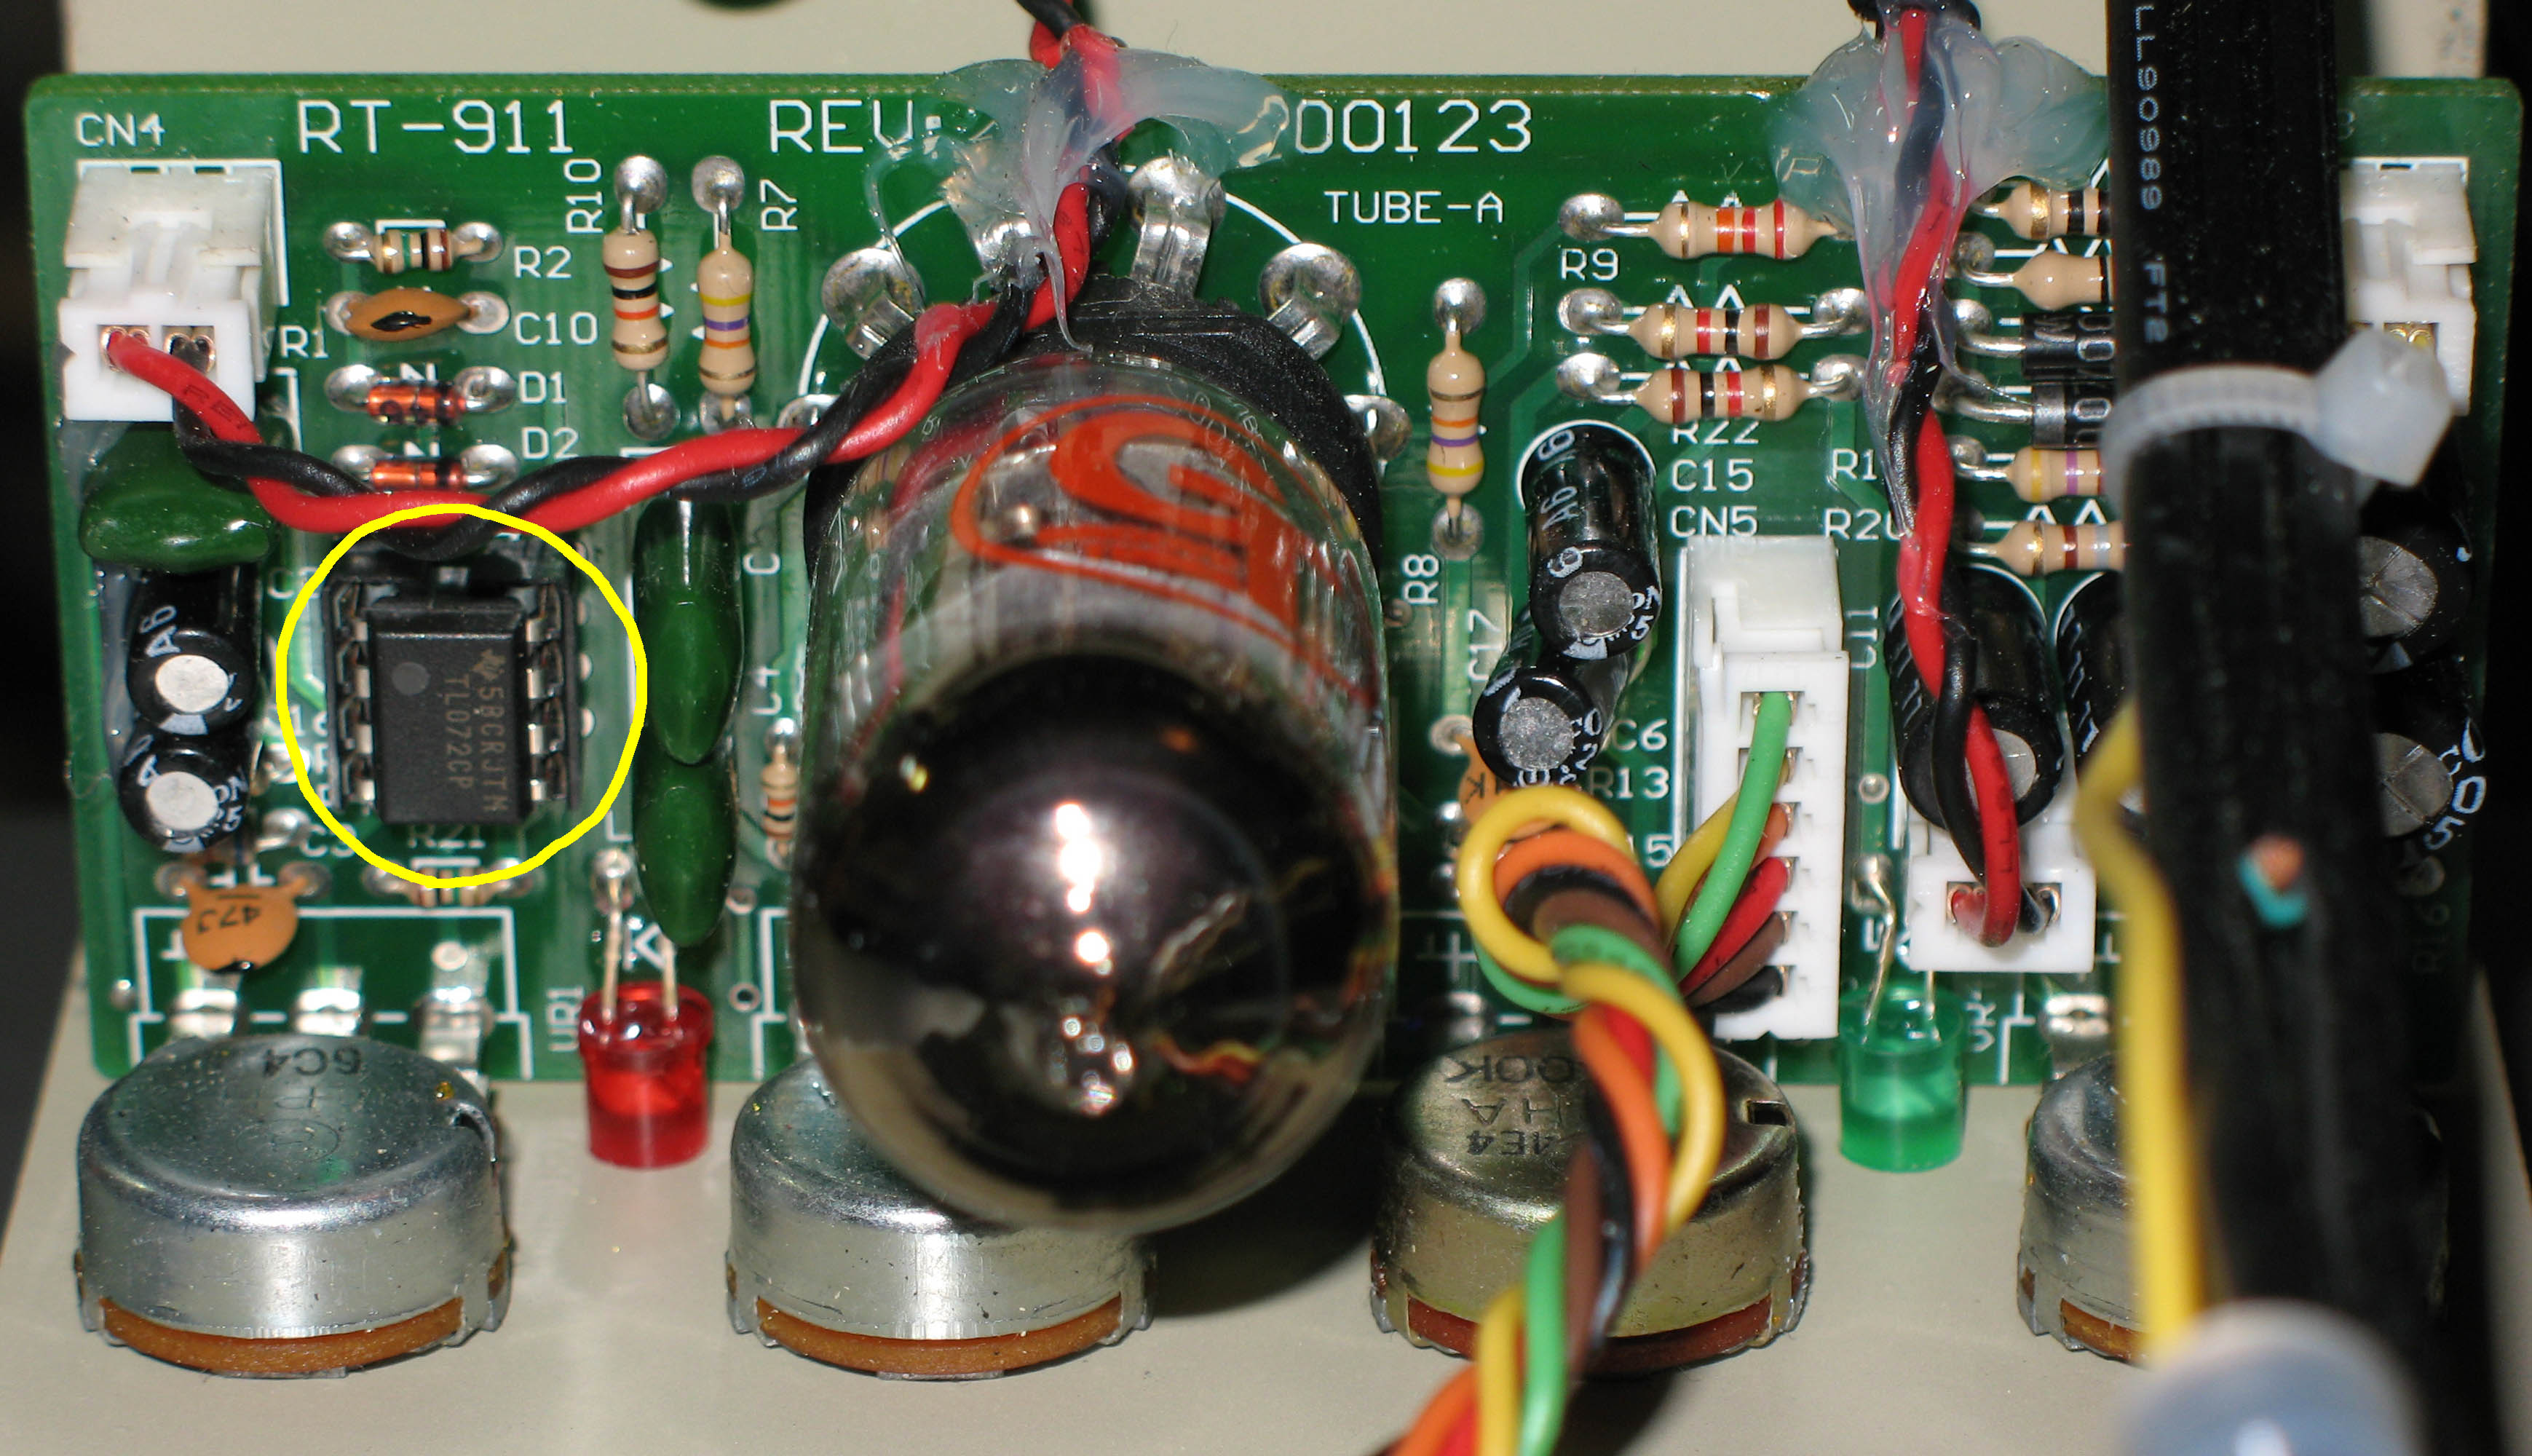 Bk Butler Tube Driver Op Amp Inverting Buffer With Opamps Electrical Engineering Stack Modifications Changing Amps As Stated Most Of The Hard Clipping Distortion Comes From Not You May Notice That On